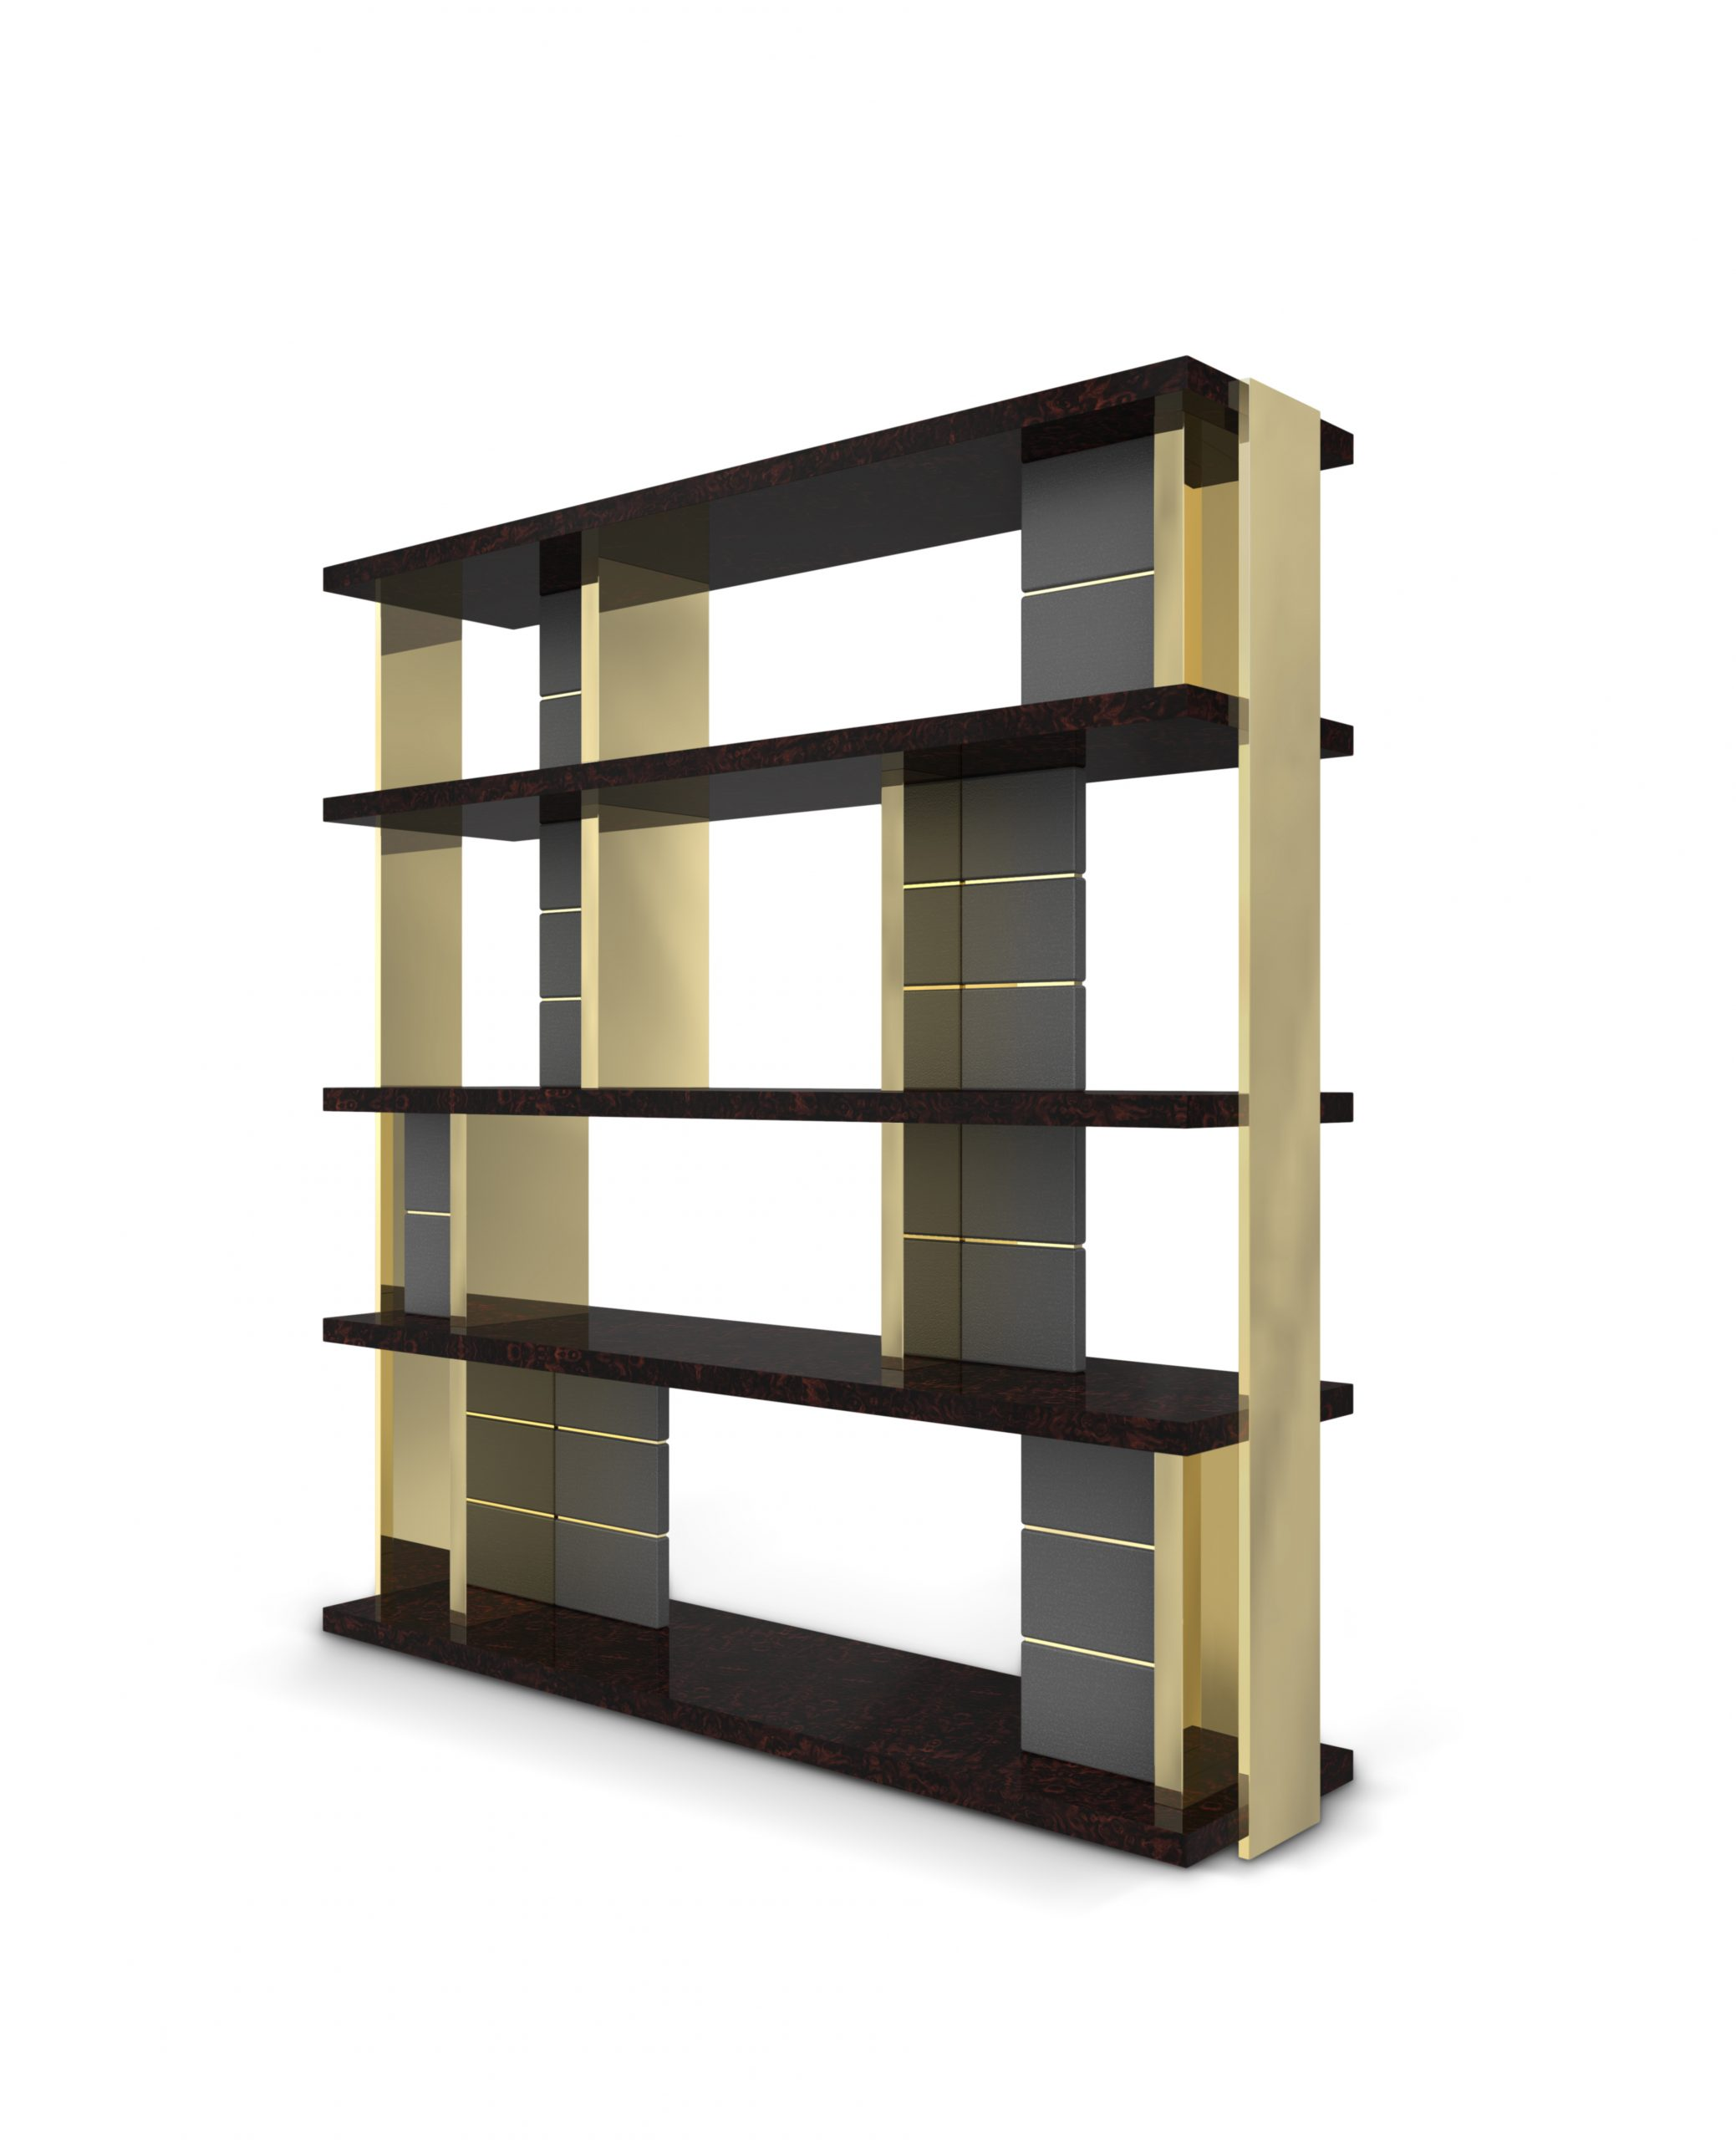 Lloyd Bookcase by Luxxu gentleman's office Gentleman's Office: The Ultimate Guide lloyd bookcase 02 scaled